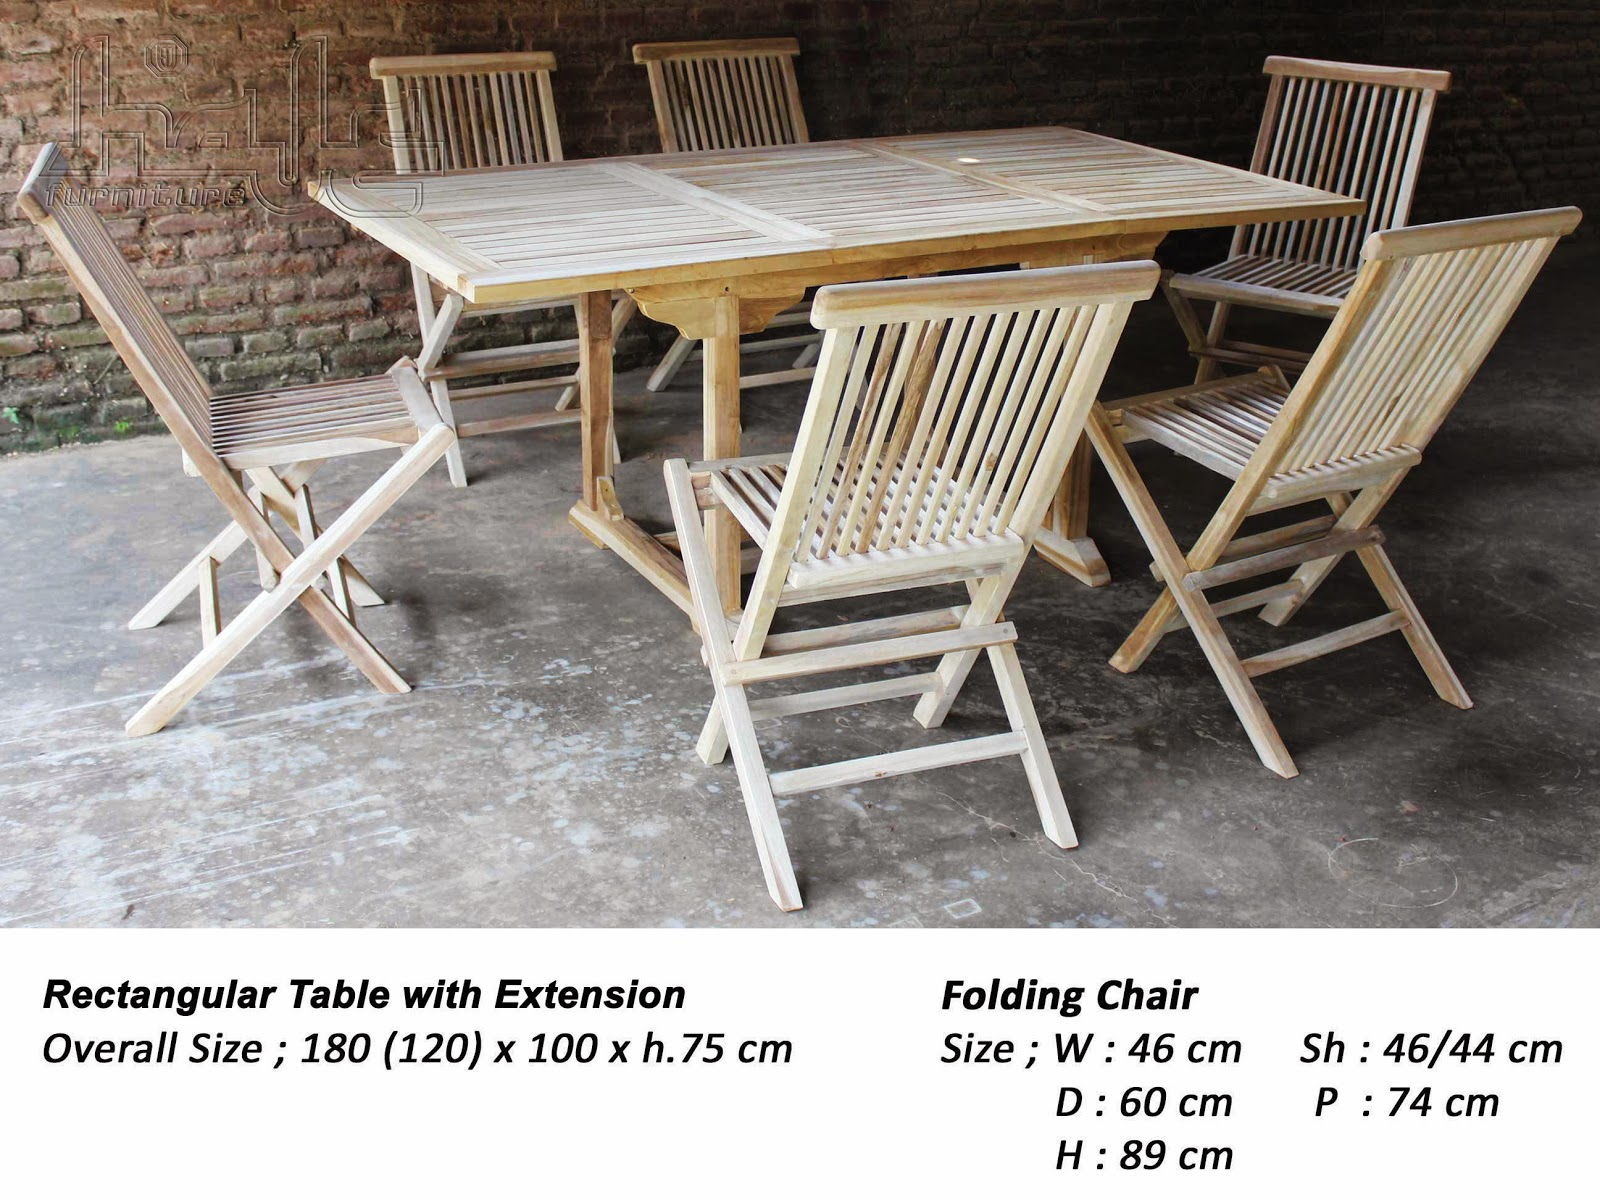 rect table - folding chairs